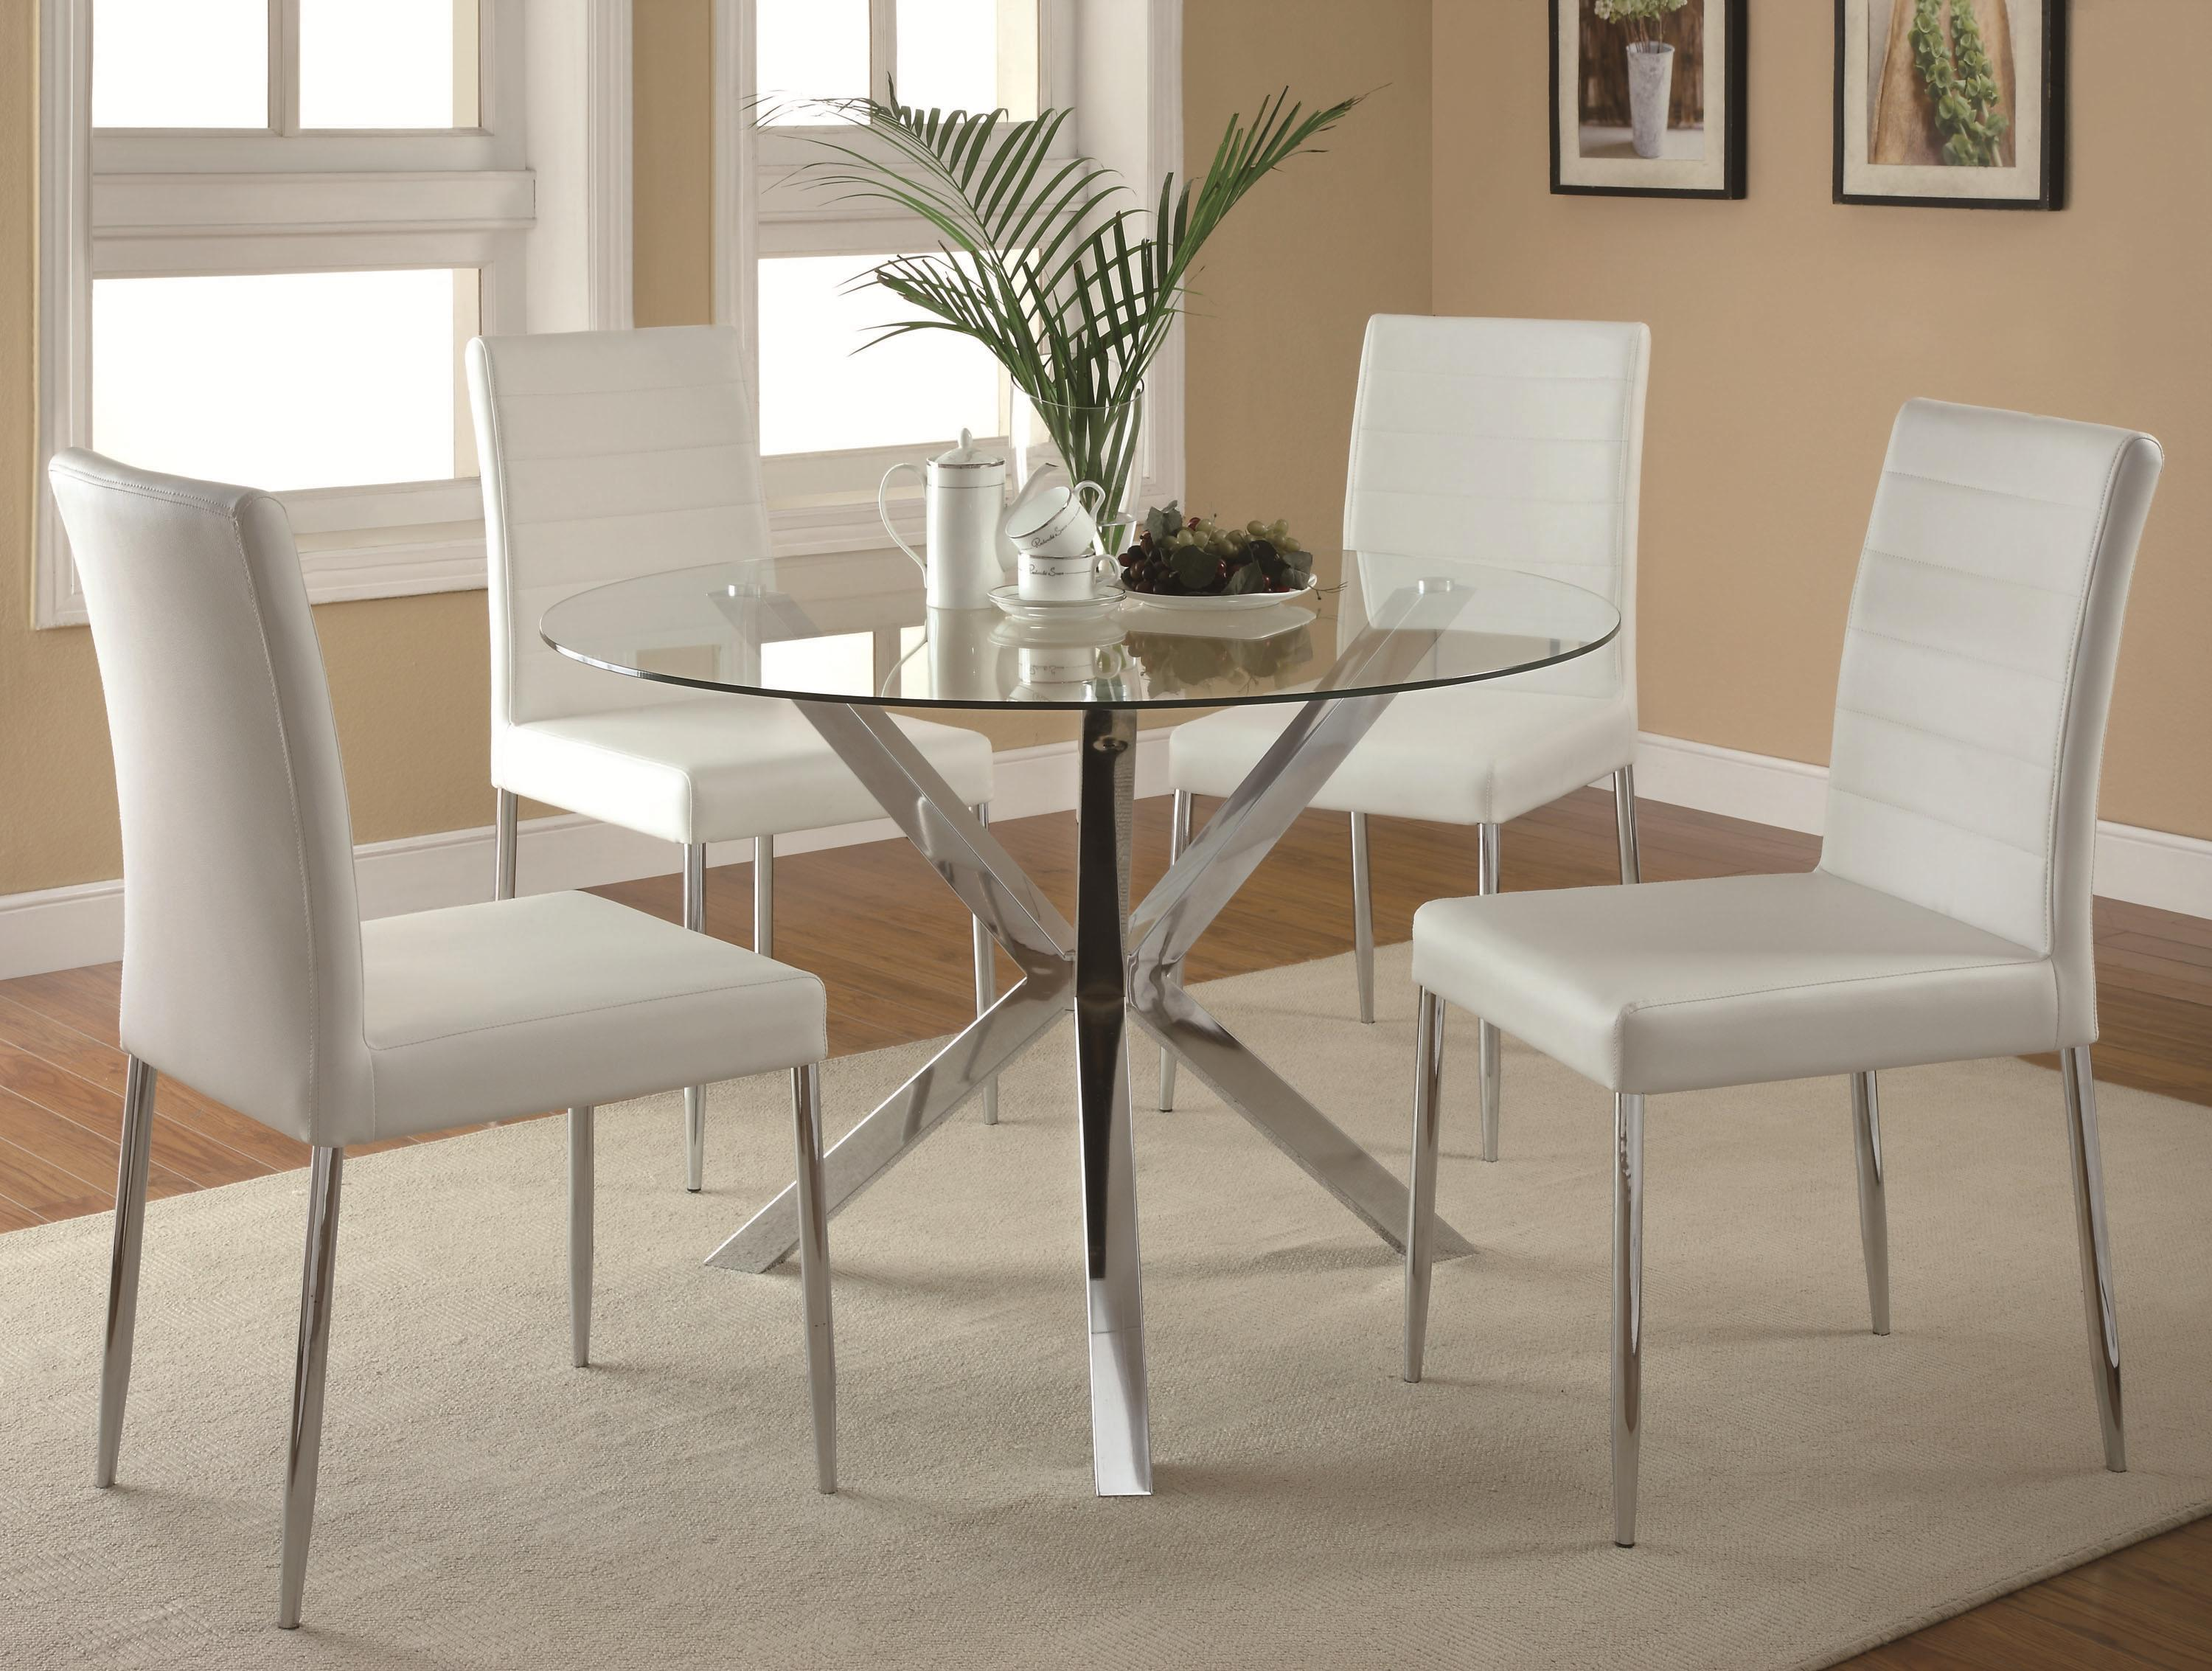 Coaster Vance 5-Piece Table \u0026 Chair Set - Item Number 120760+4x120767WHT & Coaster Vance Contemporary 5-Piece Glass Top Table and Chair Set ...